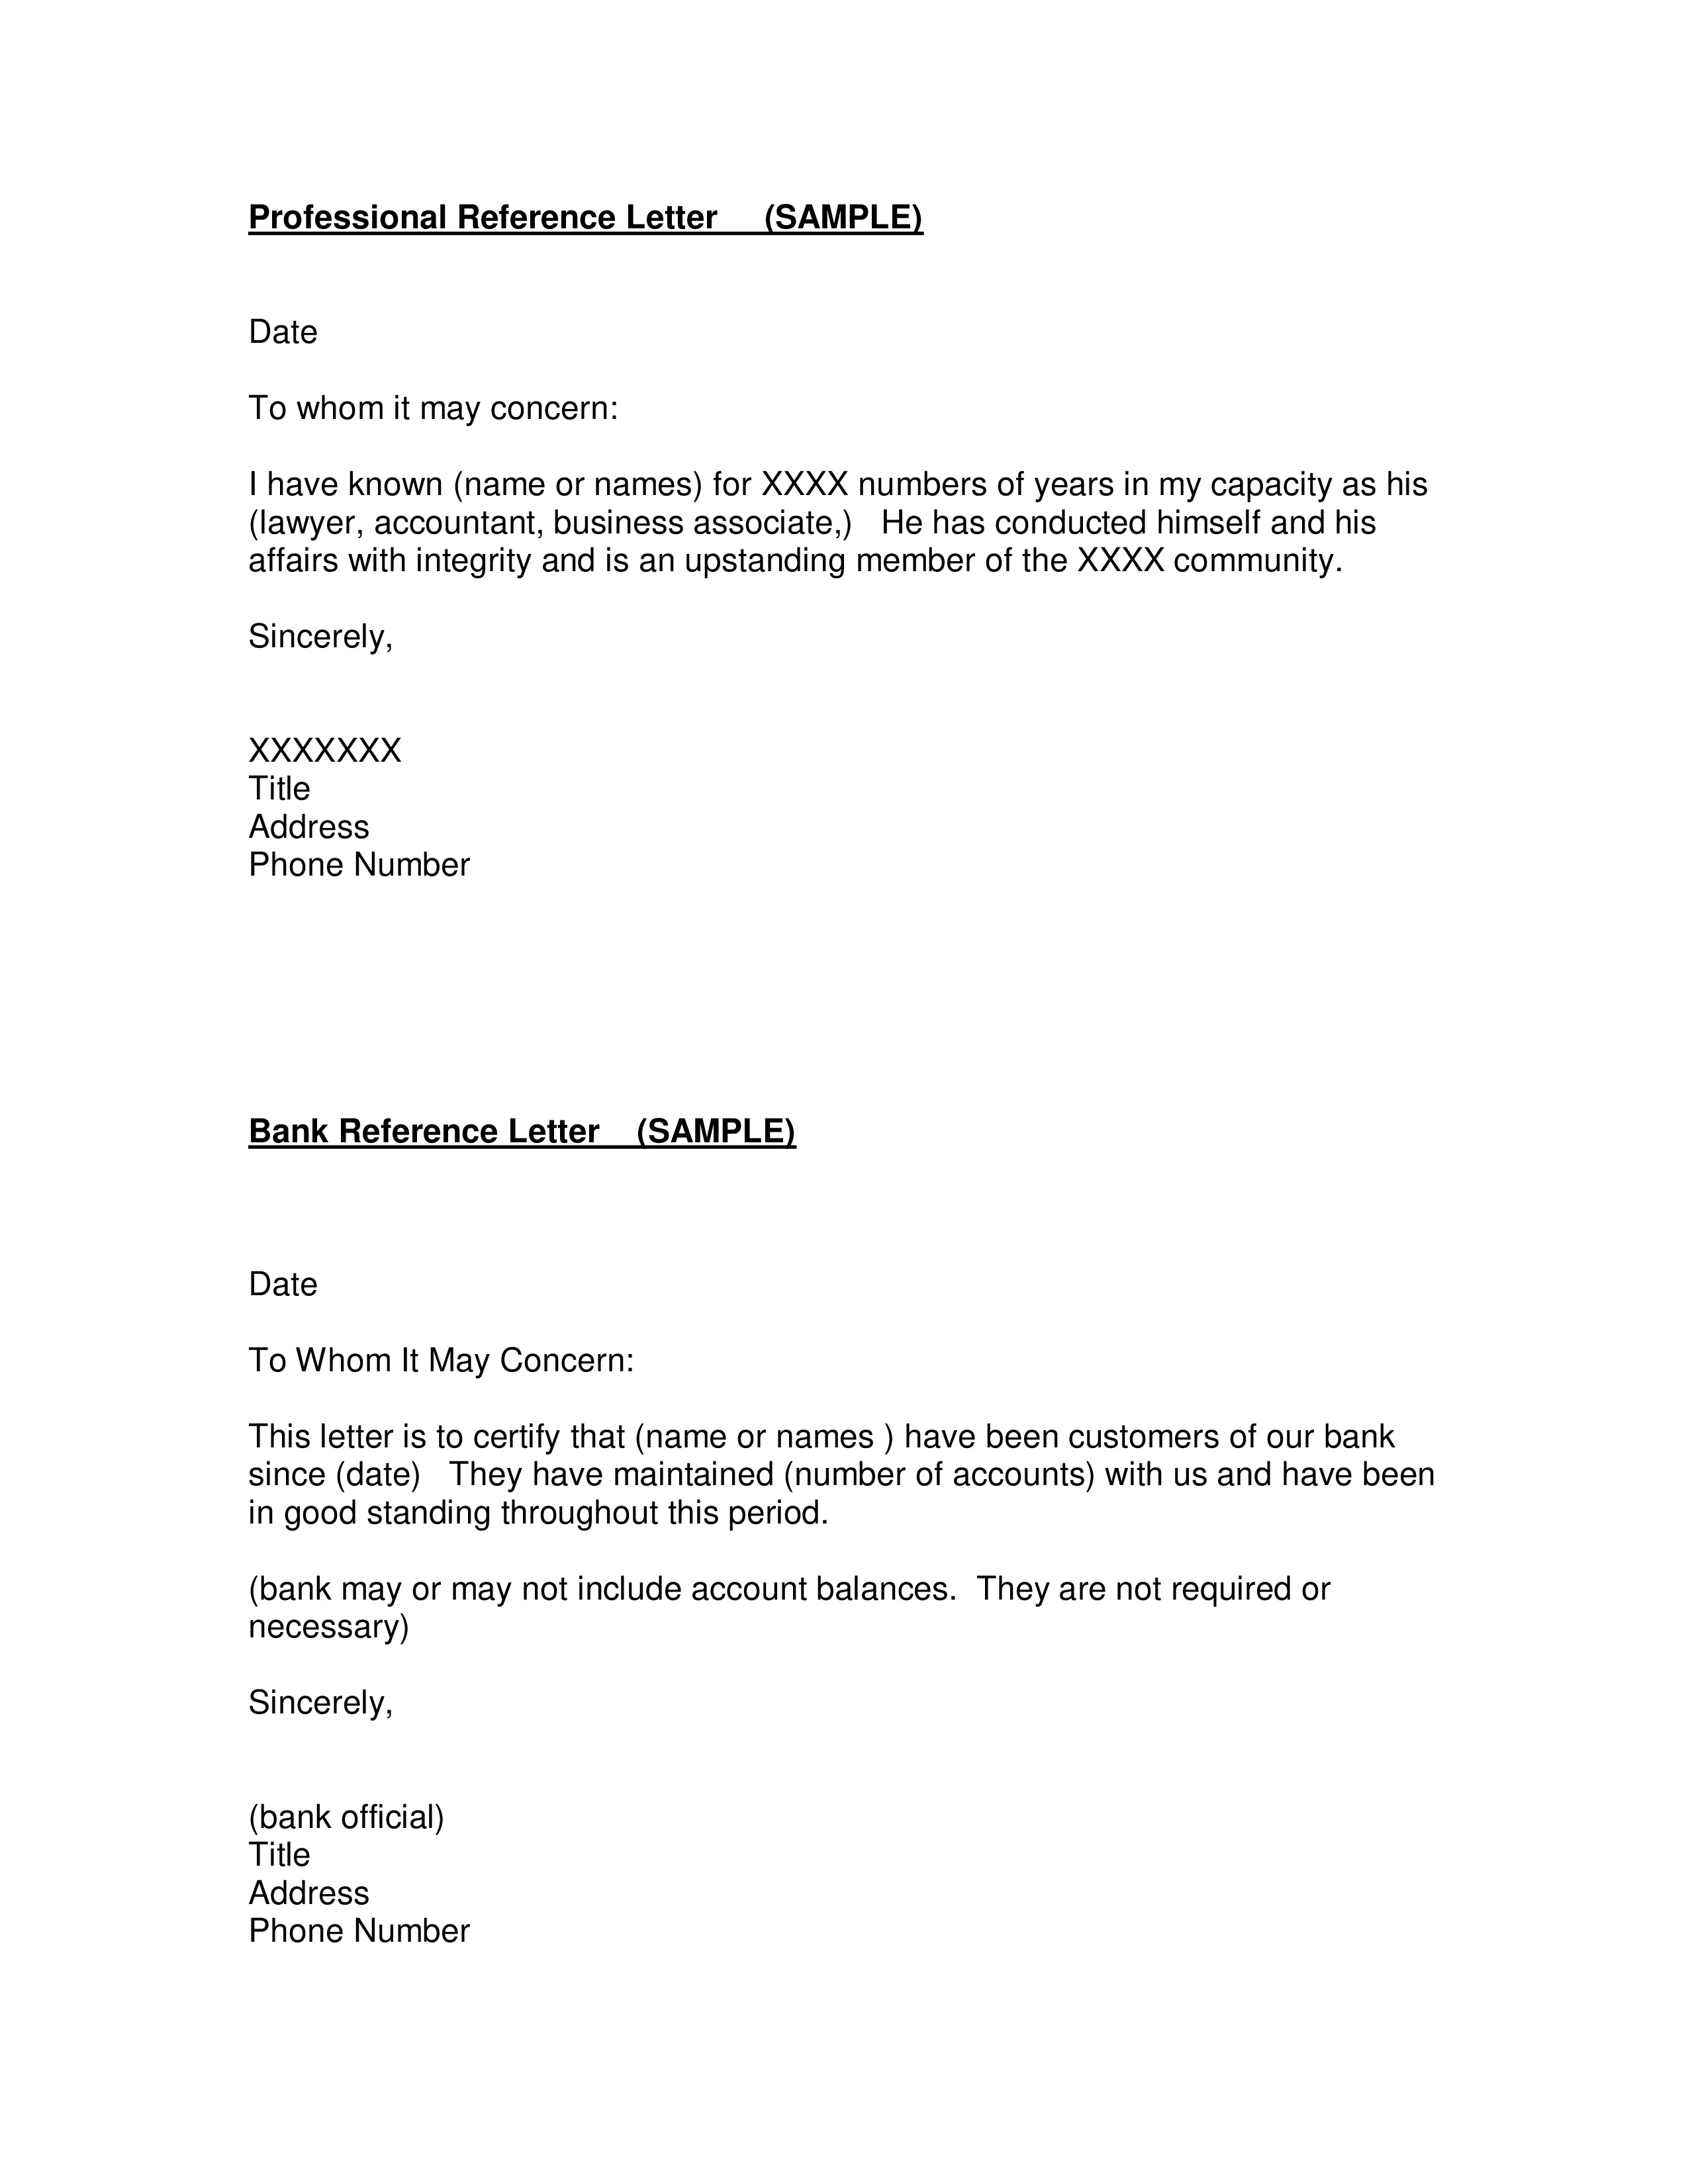 005 Stunning Professional Reference Letter Template Design  Nursing Free CharacterFull